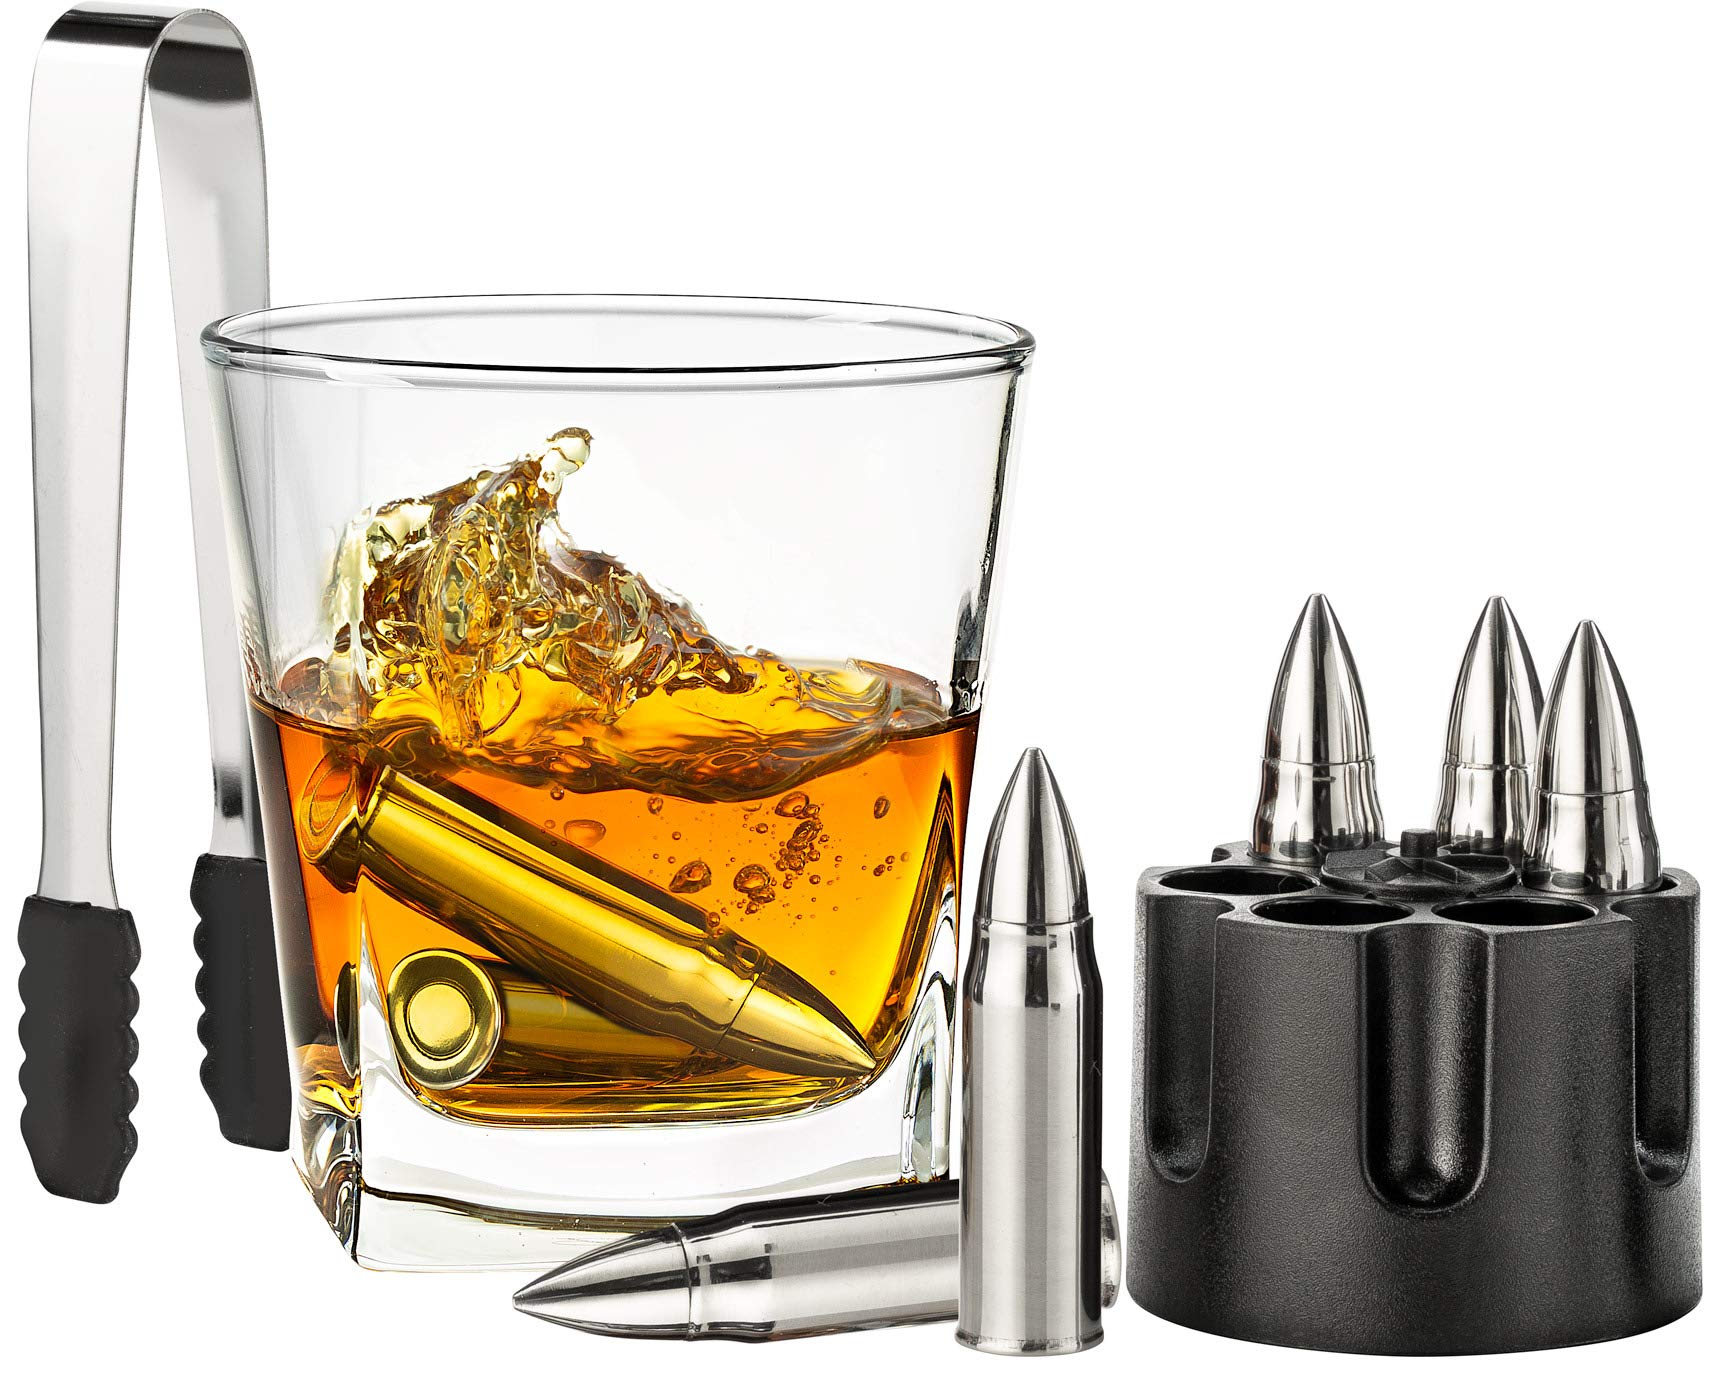 Whiskey Stones – Personalized Gifts for Men – Stainless Steel Whiskey Bullet Rocks – Bourbon Ice Bullet Molds – Premium Chilling Rocks + Freezer Pouch – Set of 6 Bullet-Shaped Drink Rocks